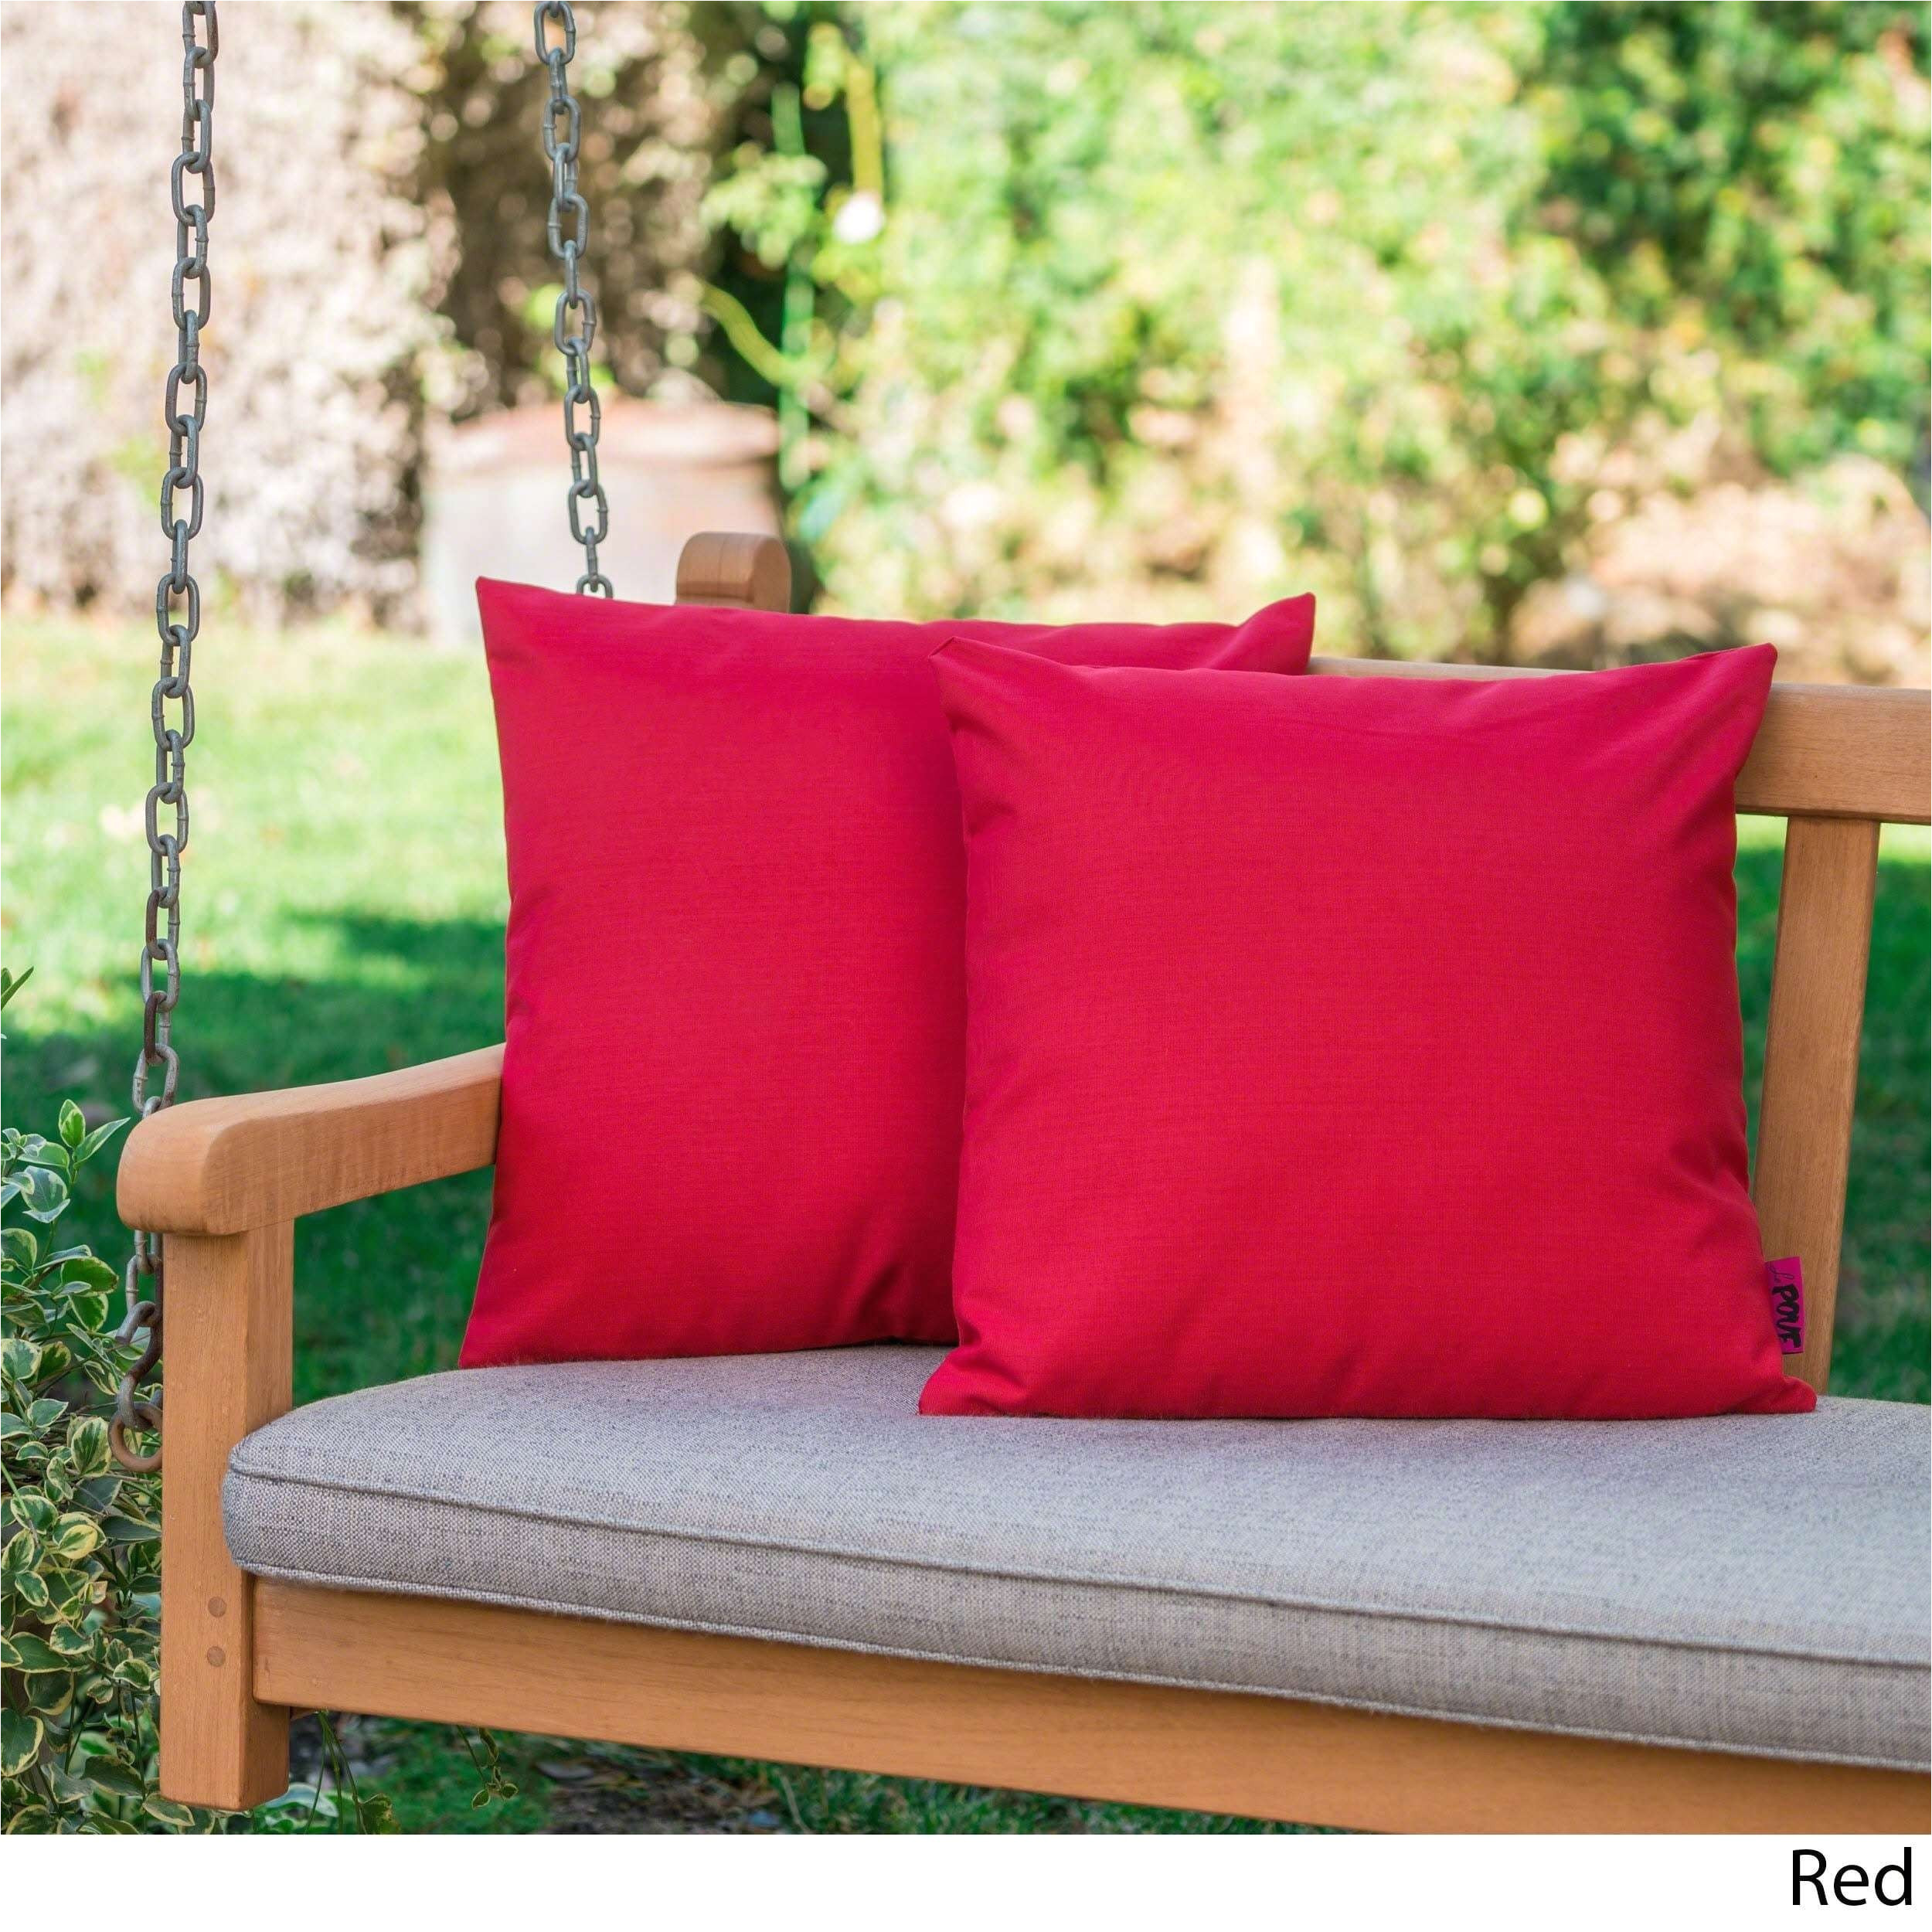 Pottery Barn Outdoor Furniture Replacement Cushions 30 Beau Chaise Lounge Pottery Barn Daytondmat Com